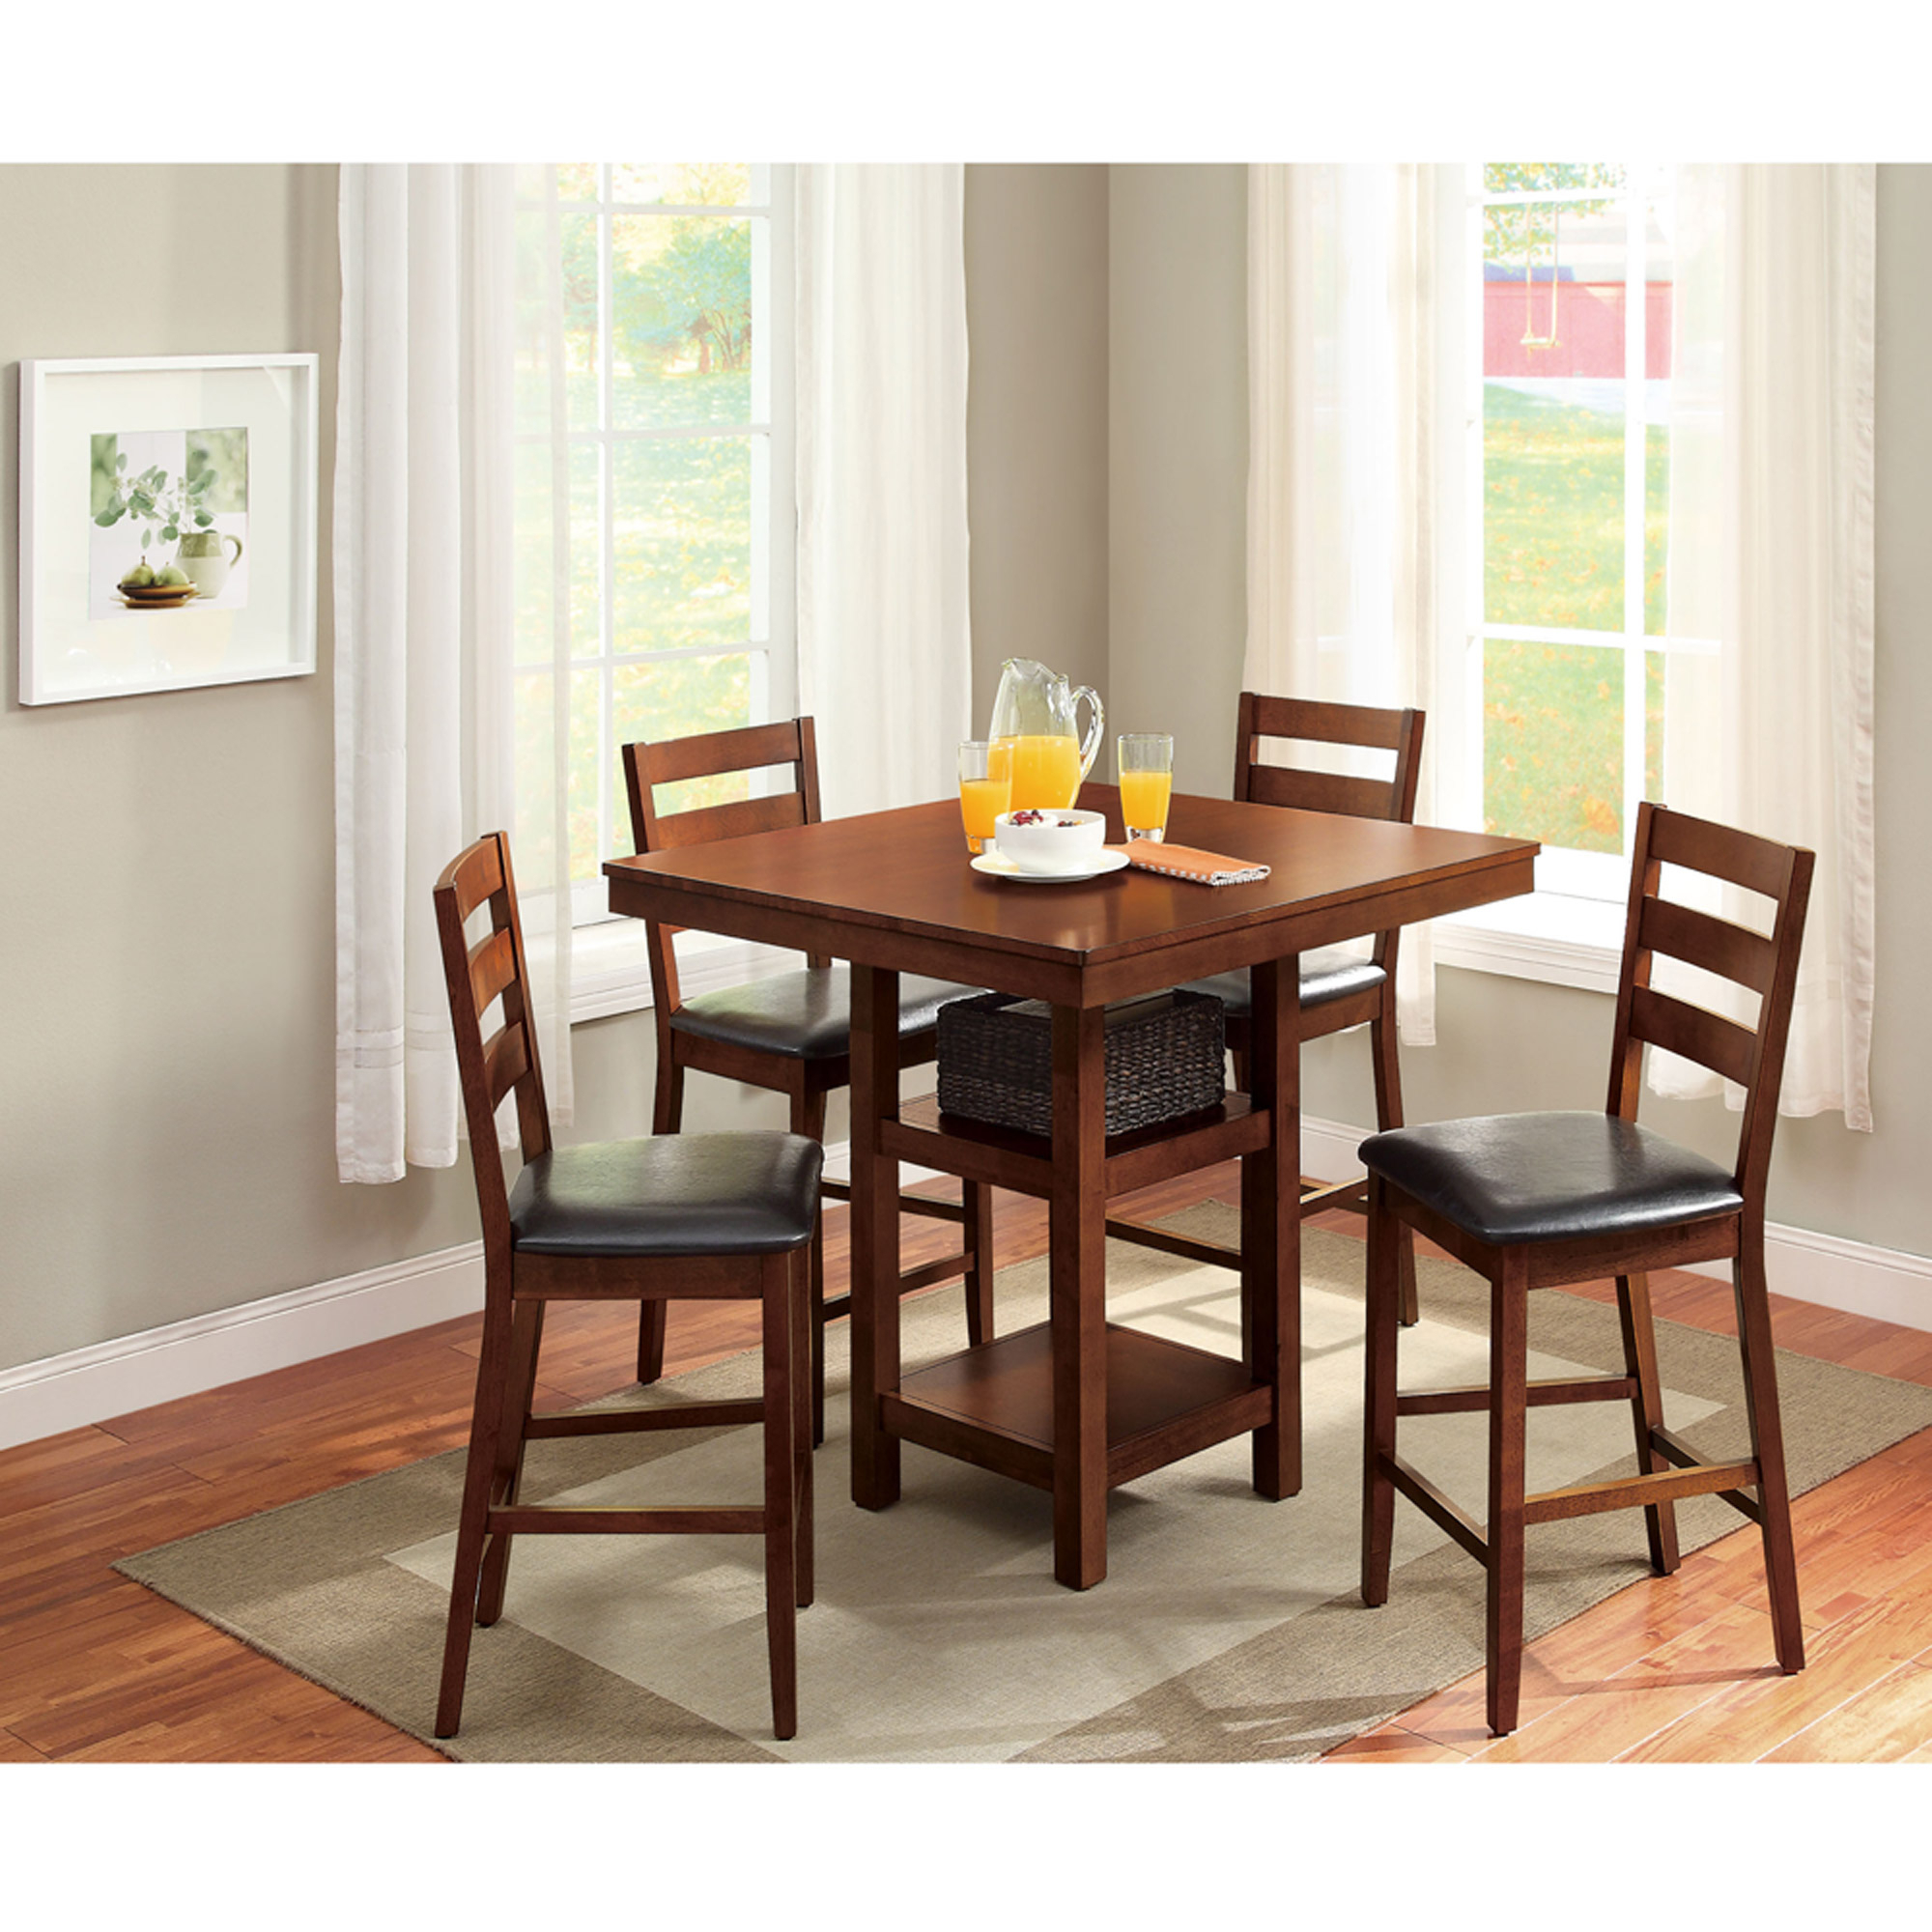 Counter Height Kitchen Table And Chair Set – Furniture & Interior Intended For Most Current Rossi 5 Piece Dining Sets (Photo 11 of 20)